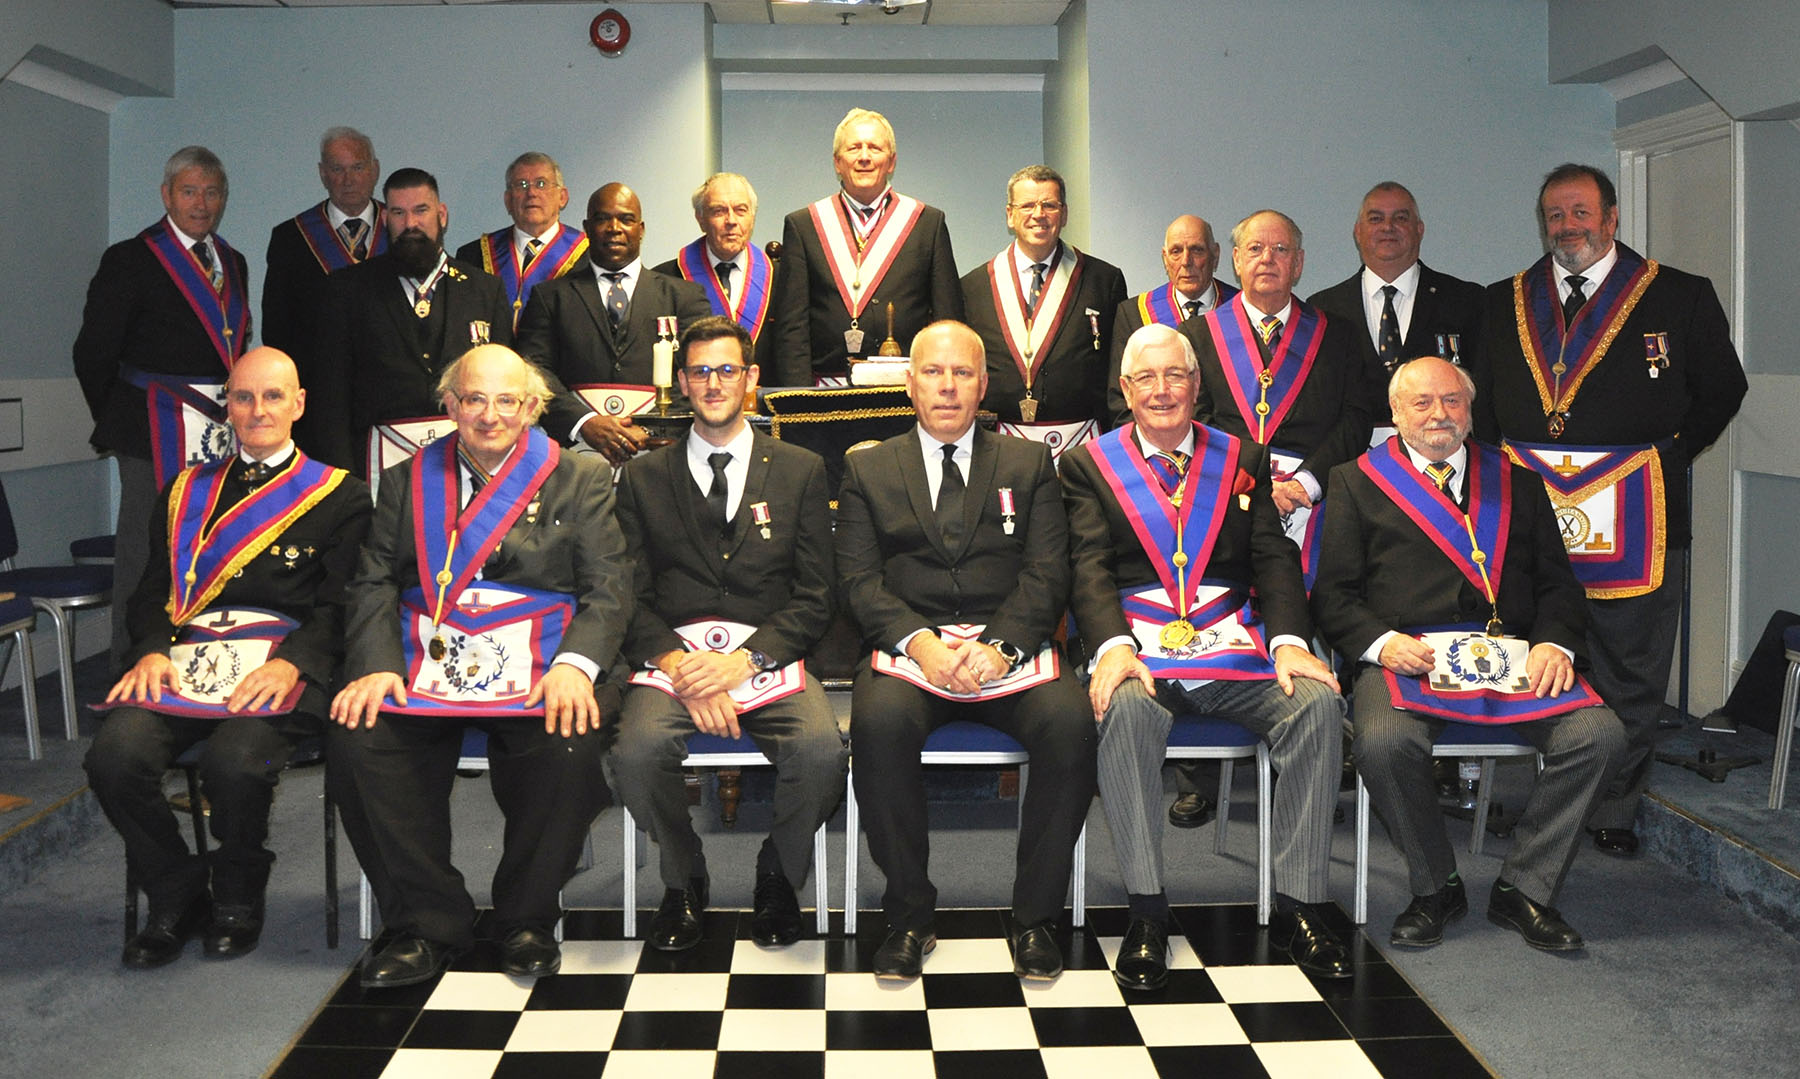 A Visit to a London Mark Lodge